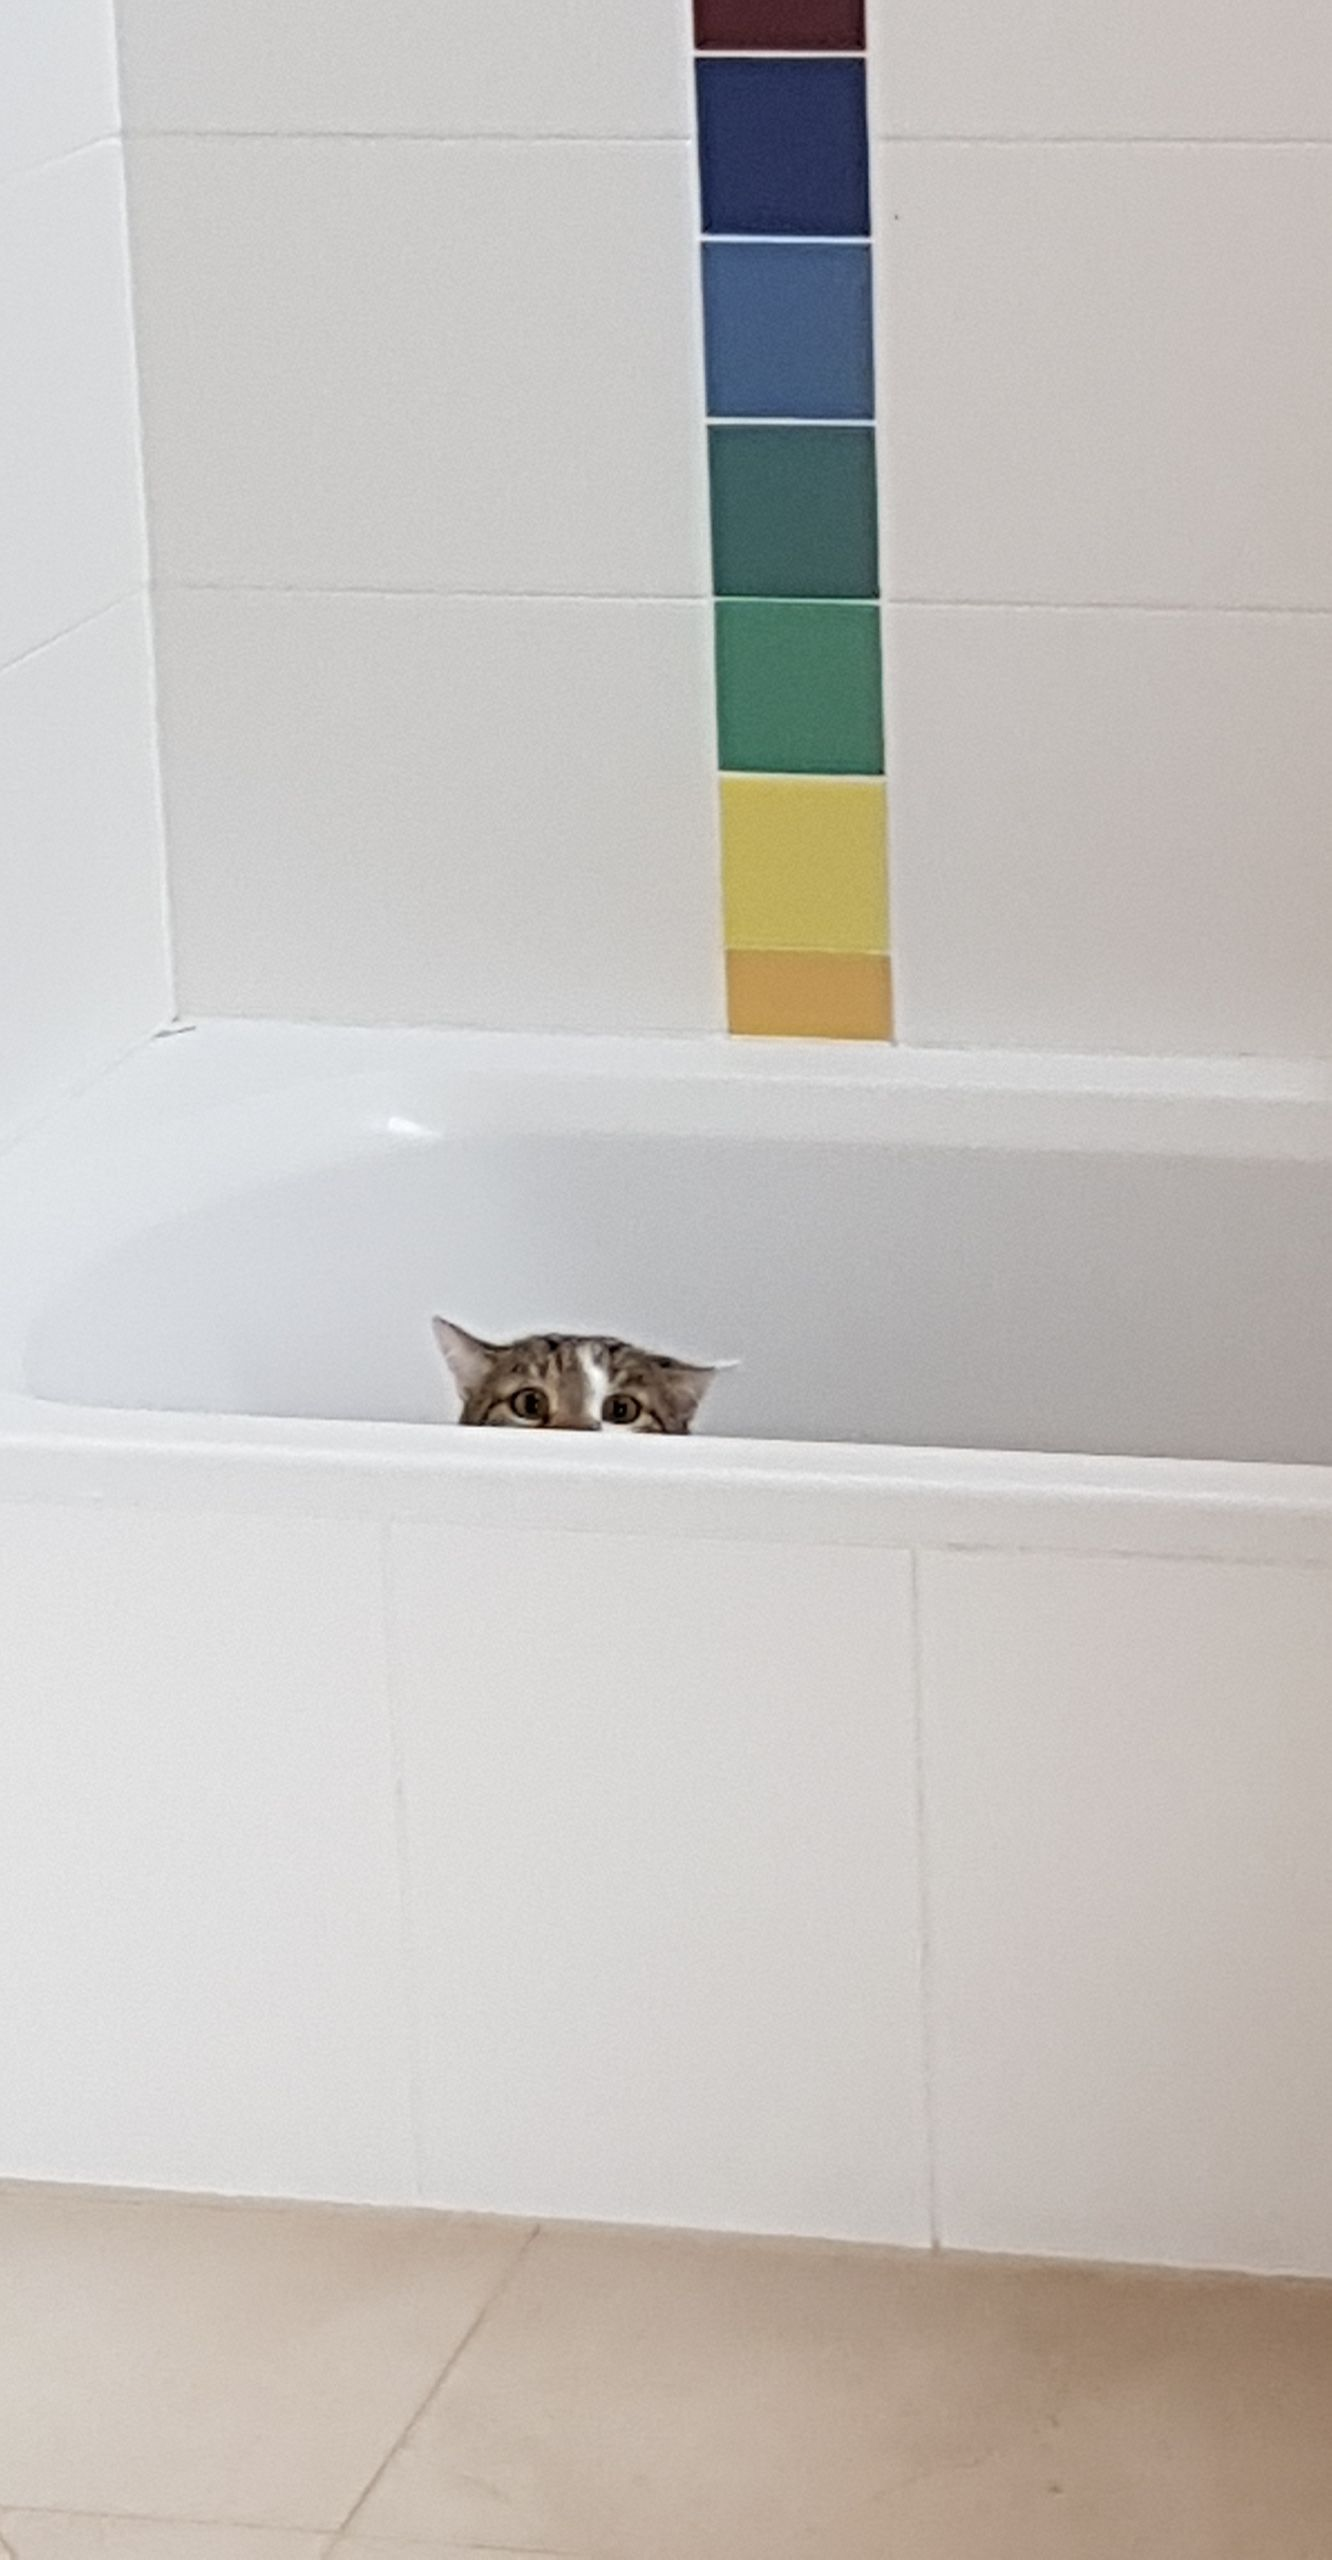 My cat got super scared by our visitors and hid in the bathtub